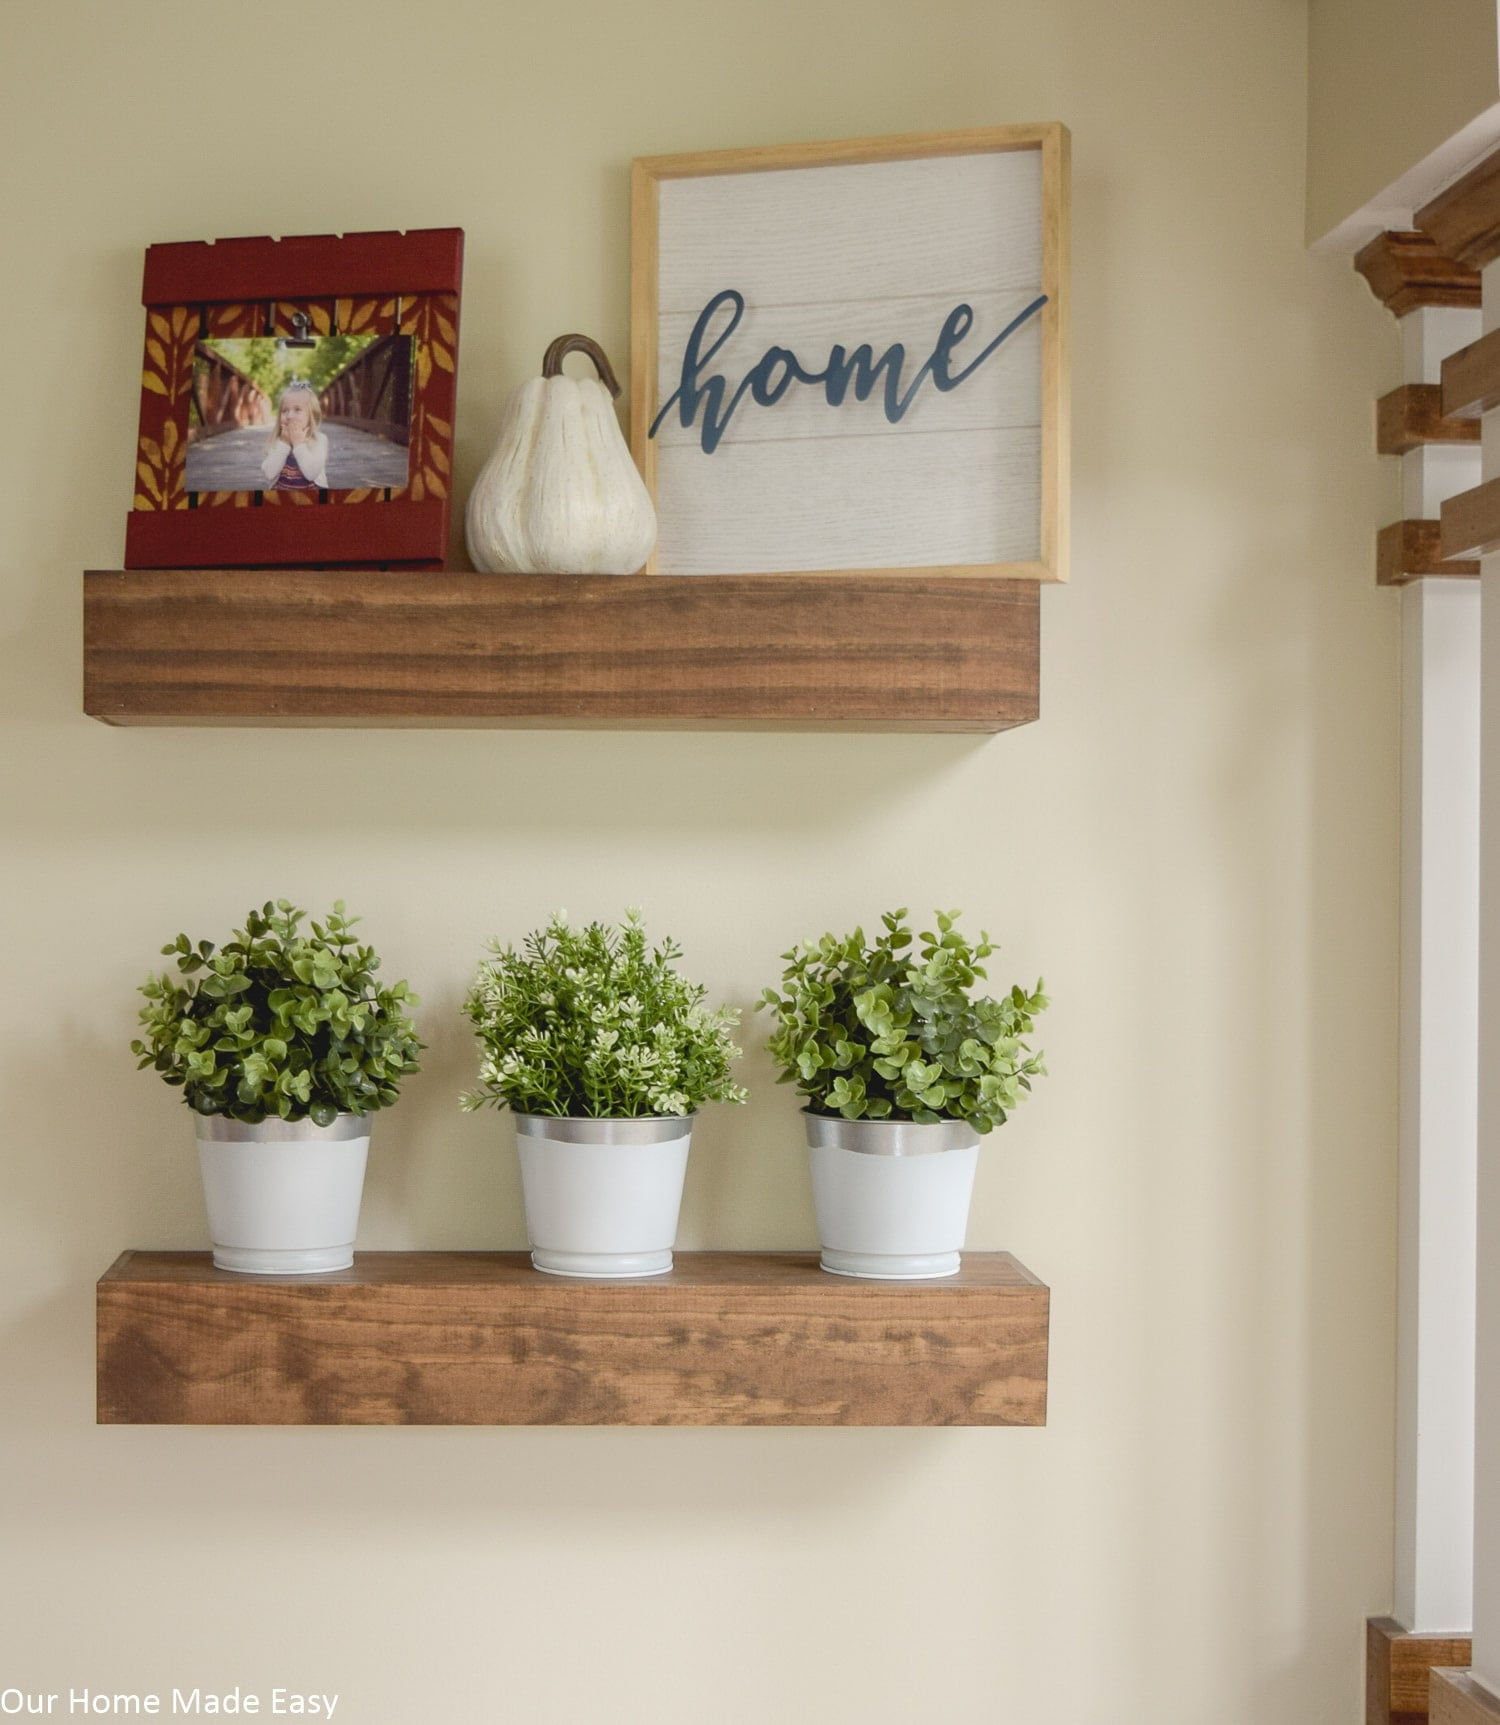 These paint-dipped metal planters are a simple addition to our home's neutral decor